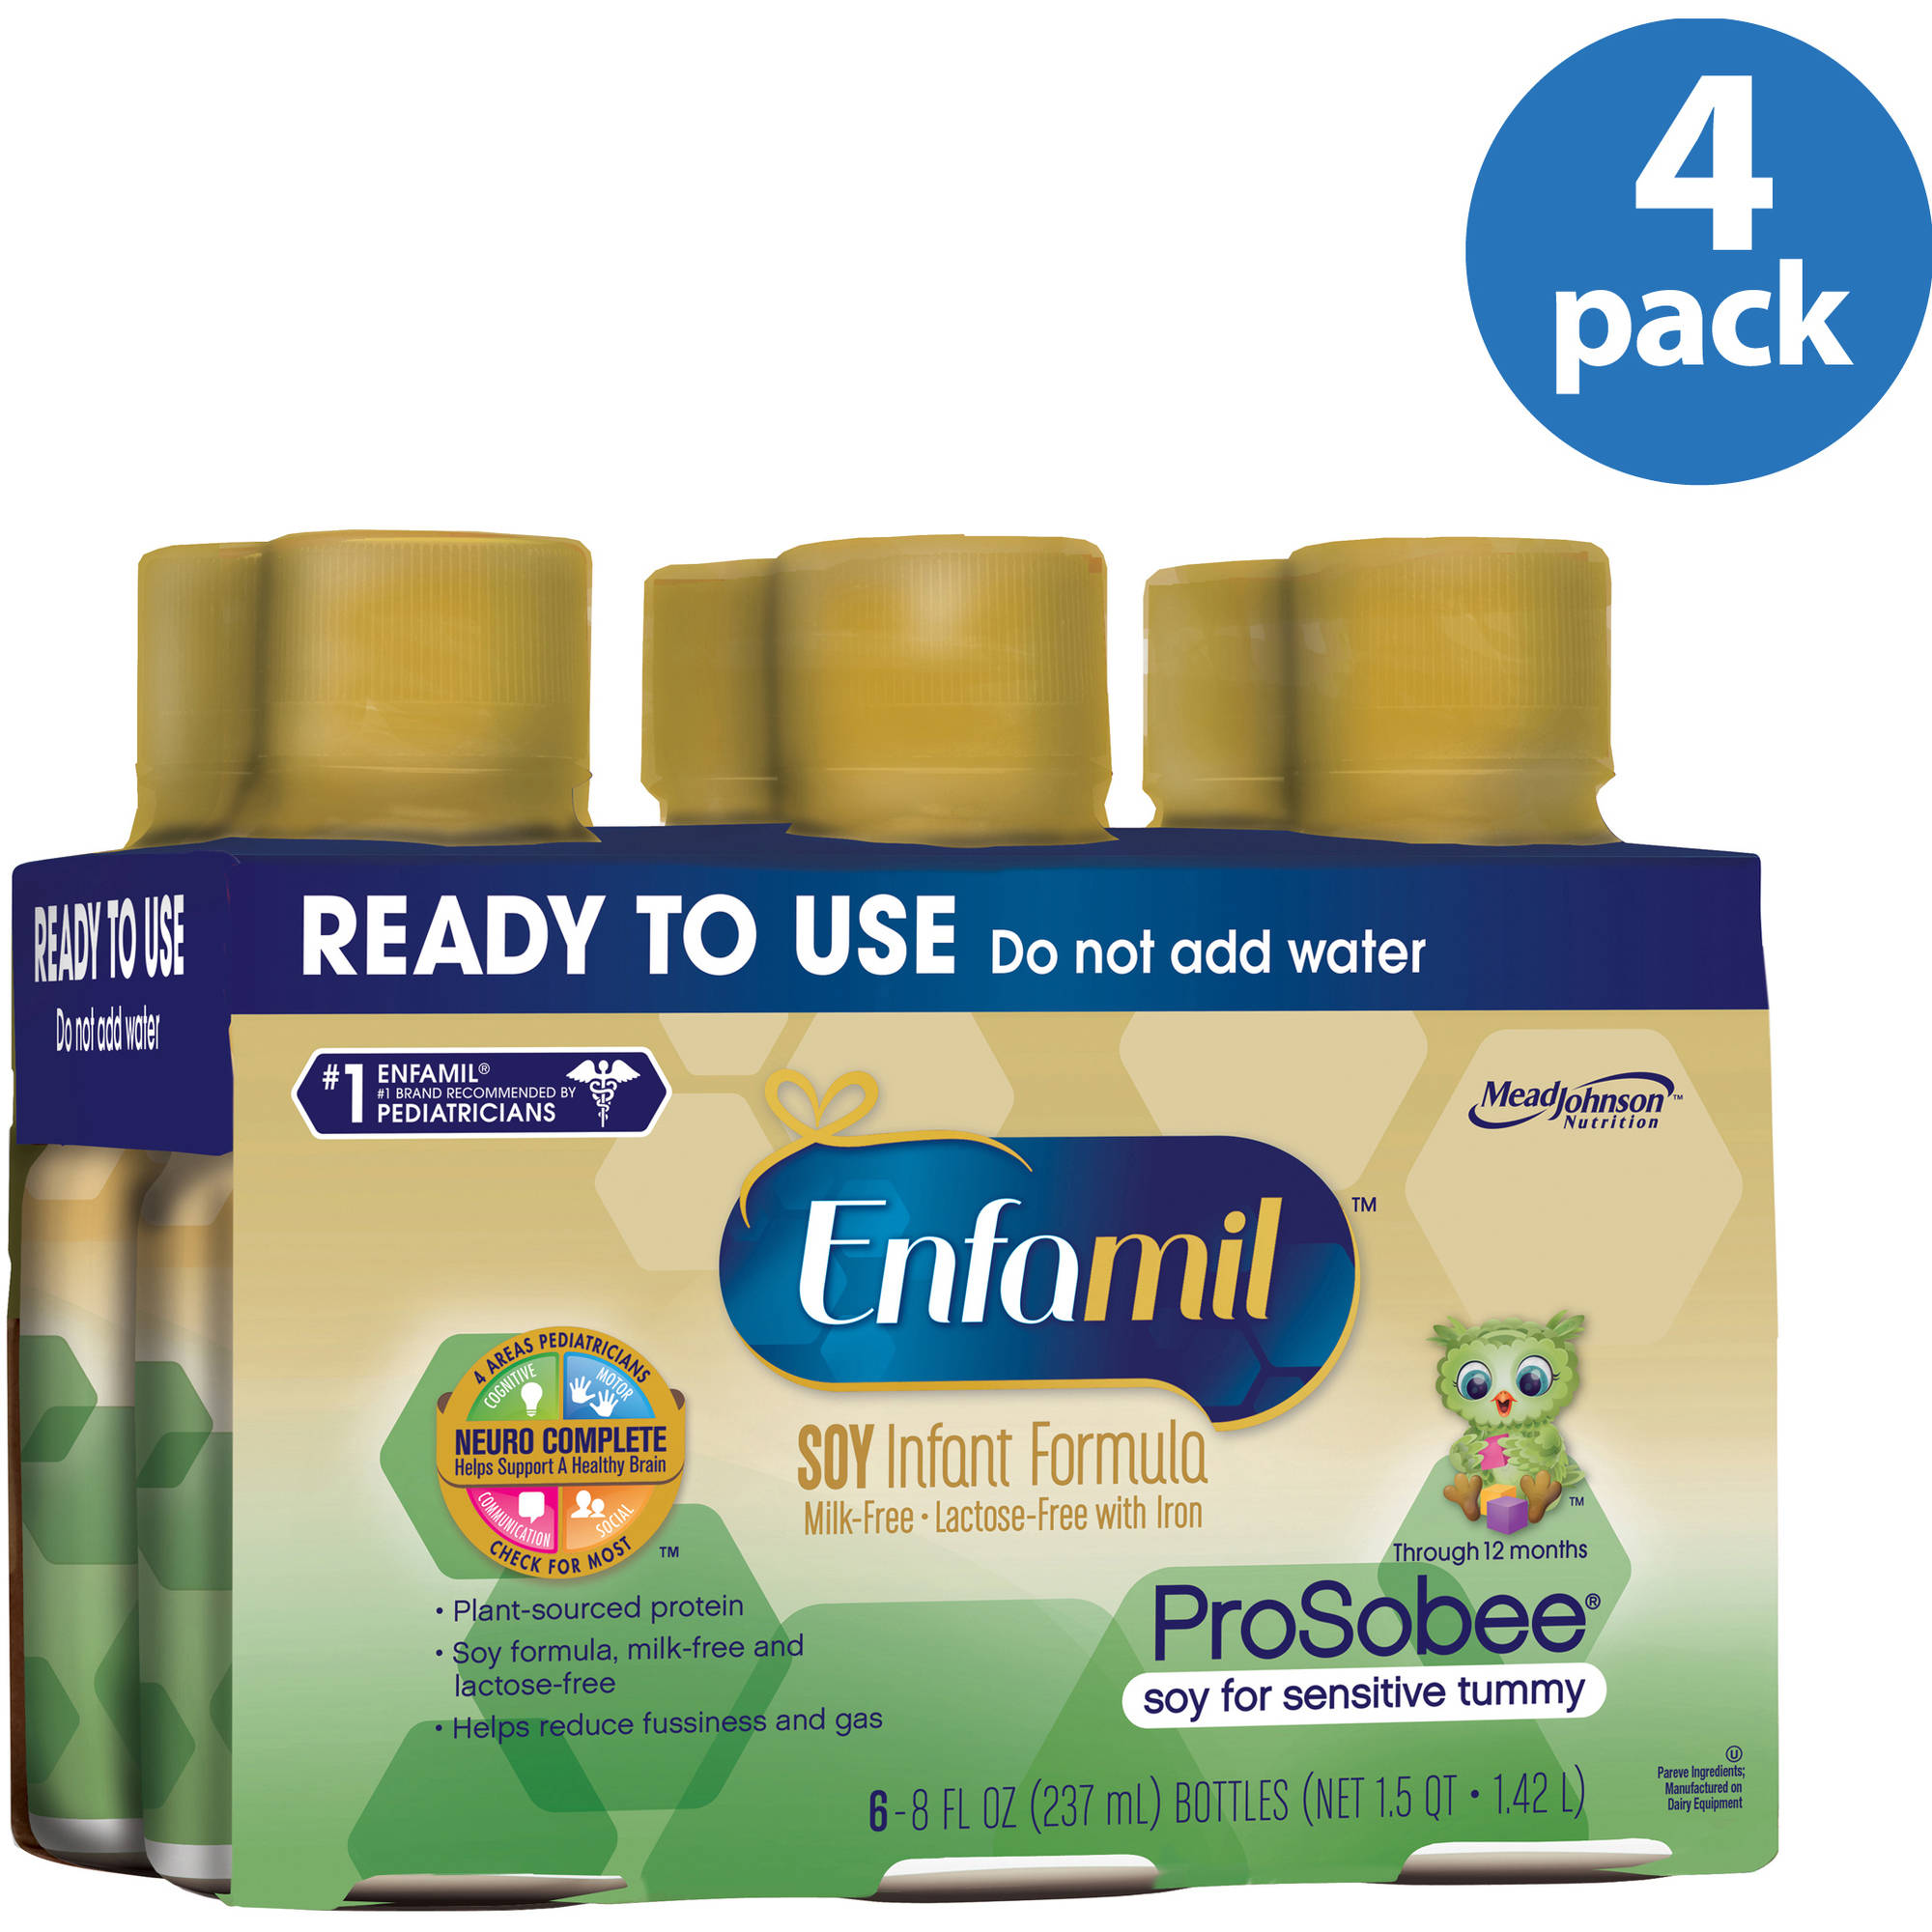 Enfamil Prosobee soy baby formula - Ready-to-Use 8 fl oz Plastic Bottles - 6 pk (Pack of 4)